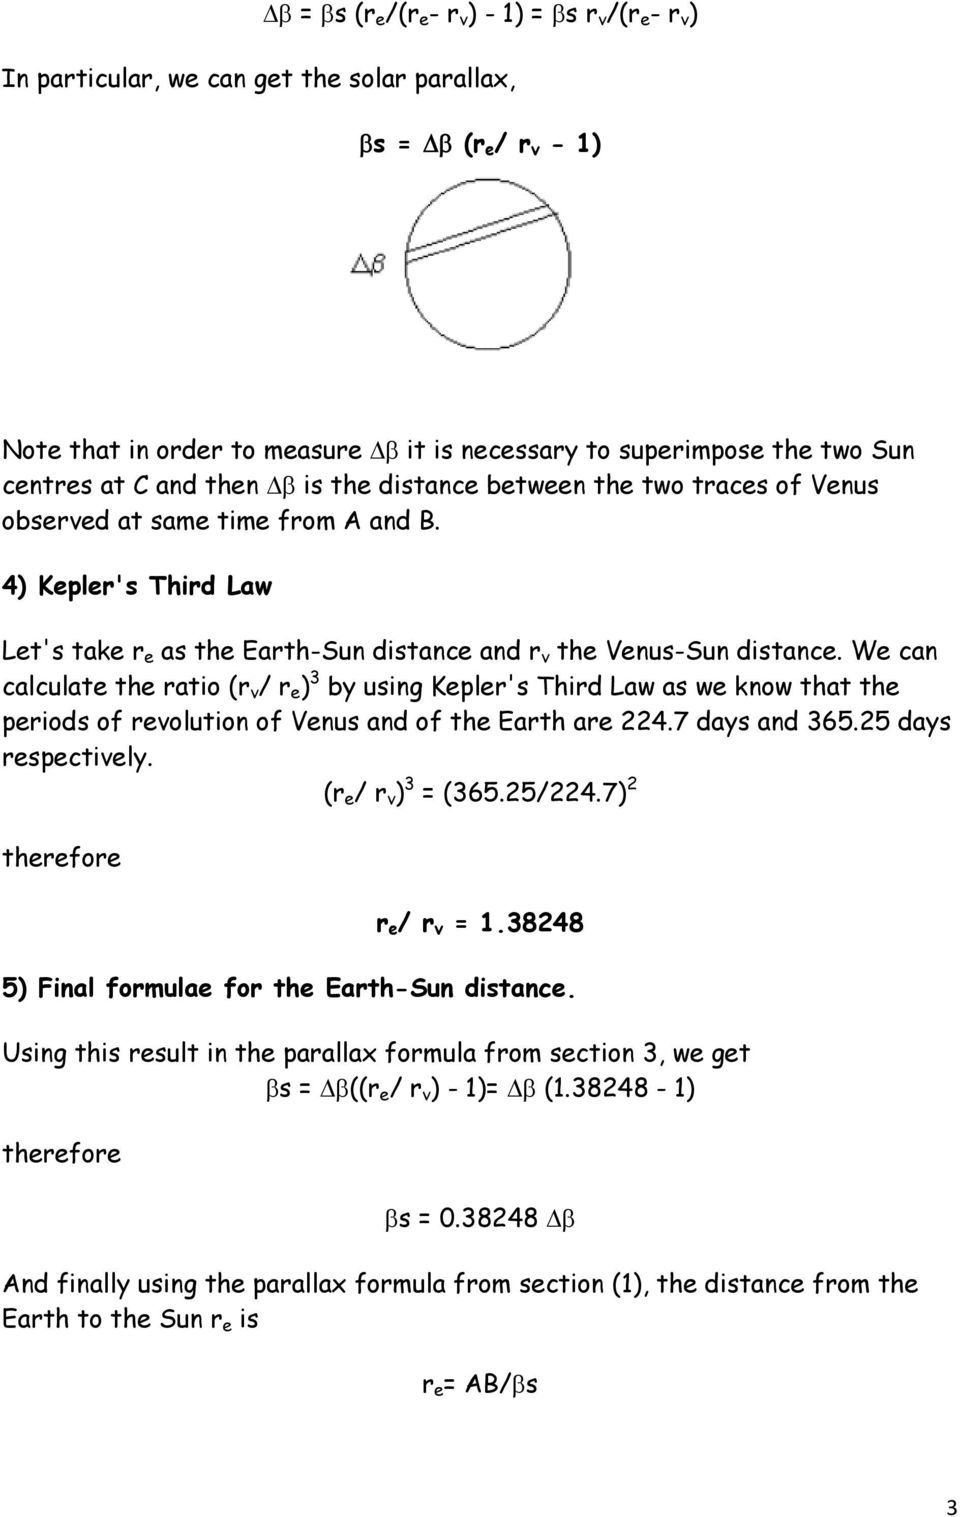 4) Kepler's Third Law Let's take r e as the Earth-Sun distance and r v the Venus-Sun distance.